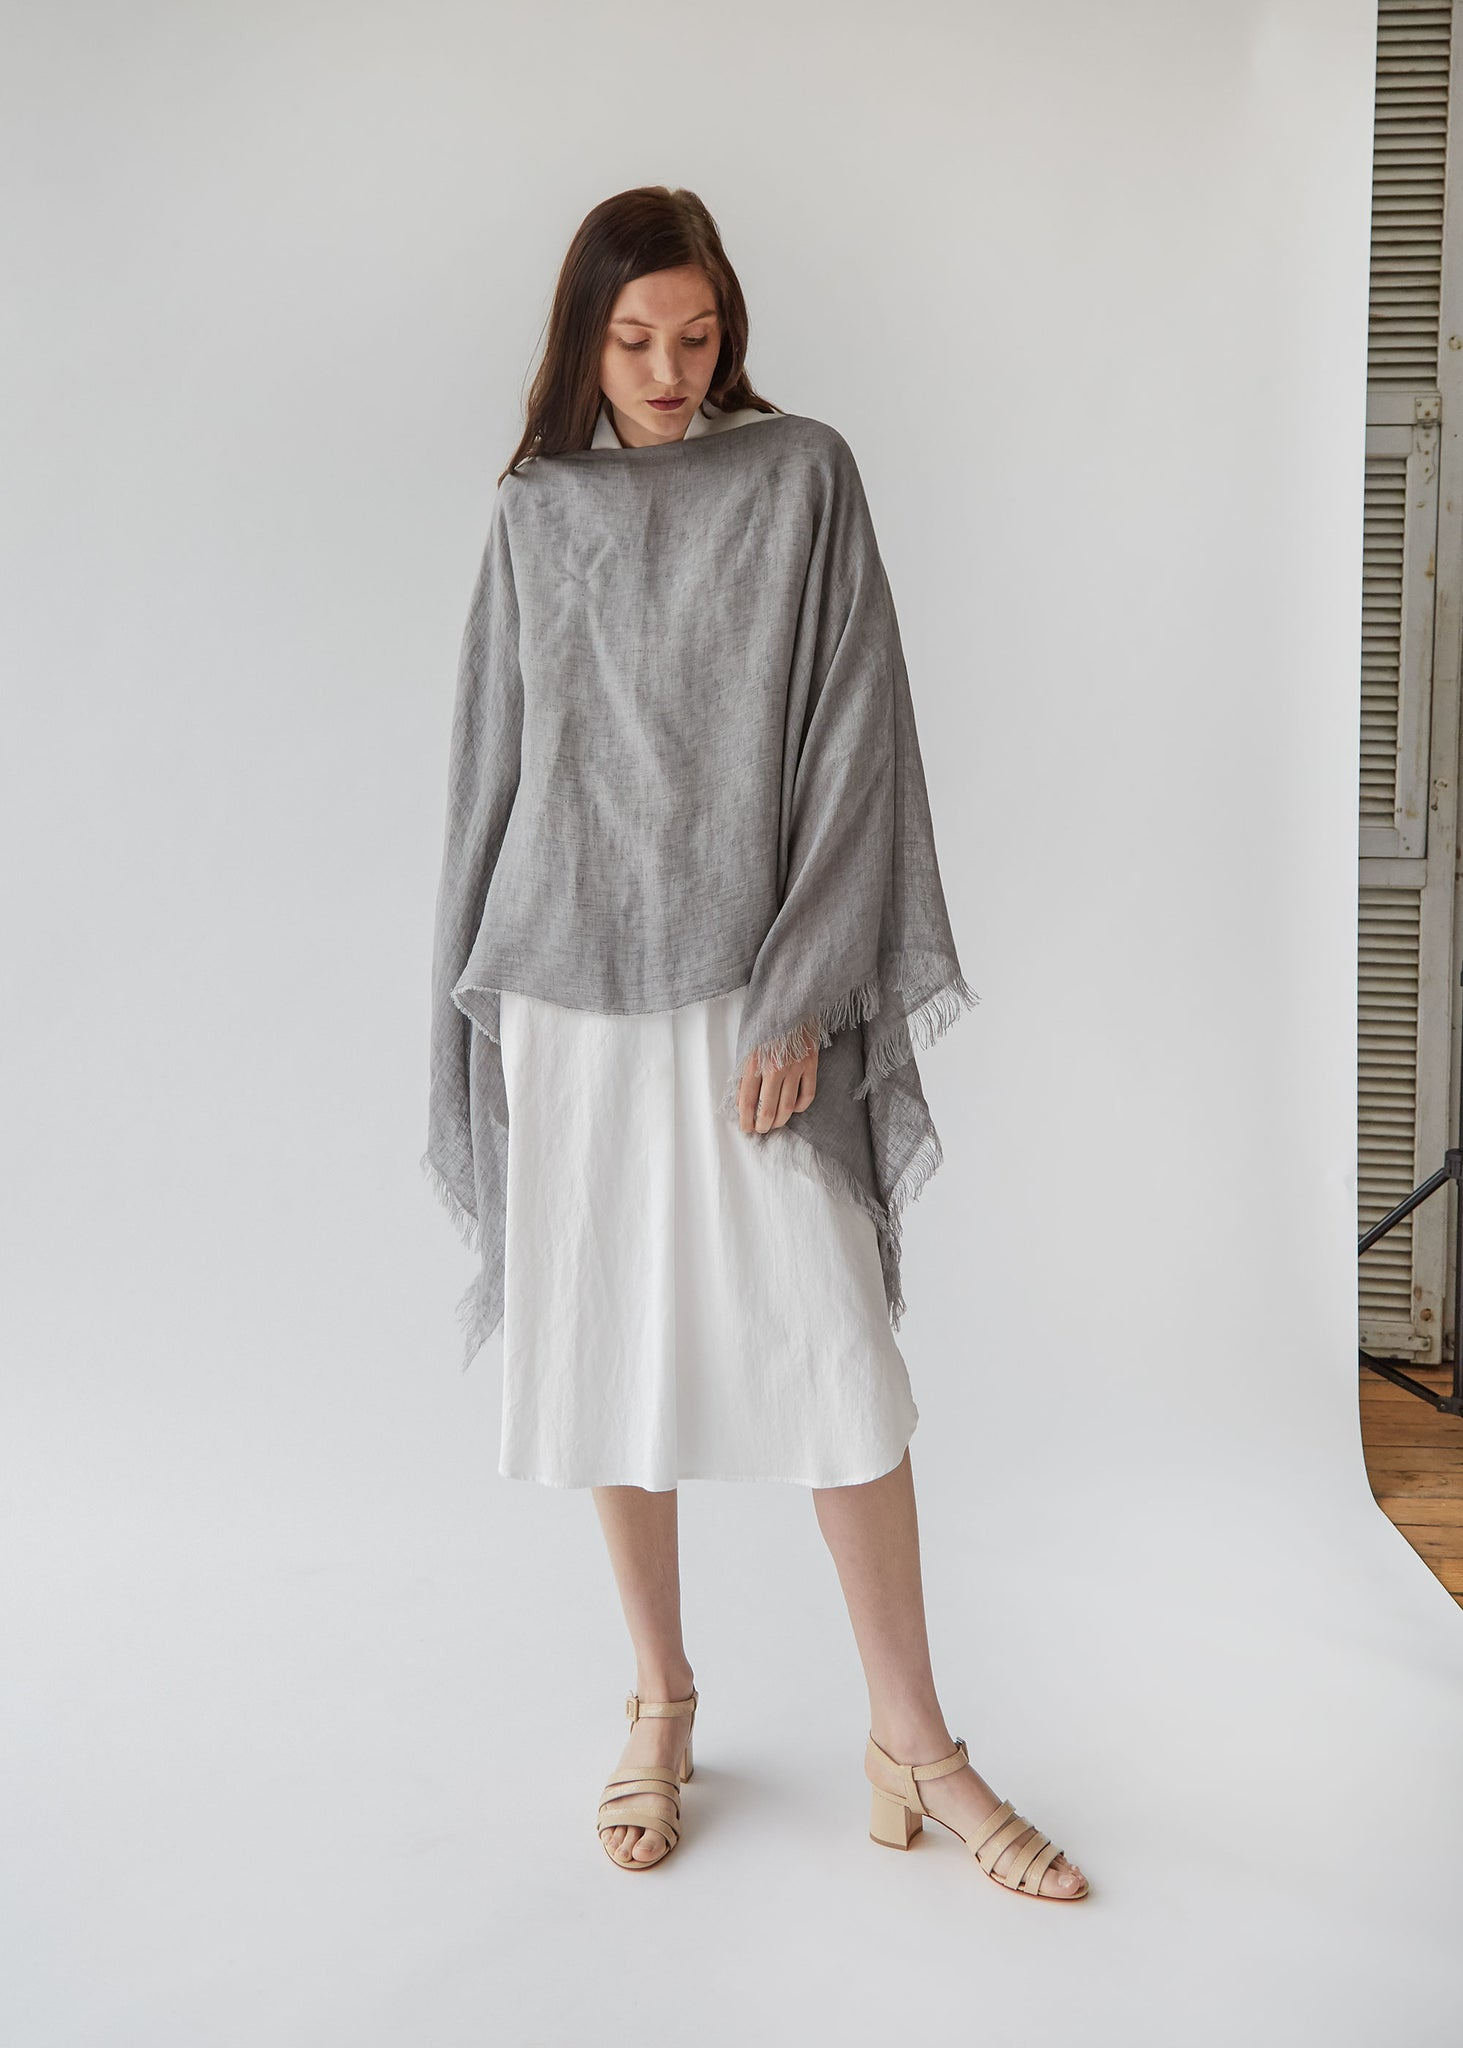 Light Poncho in Grey - SOLD OUT